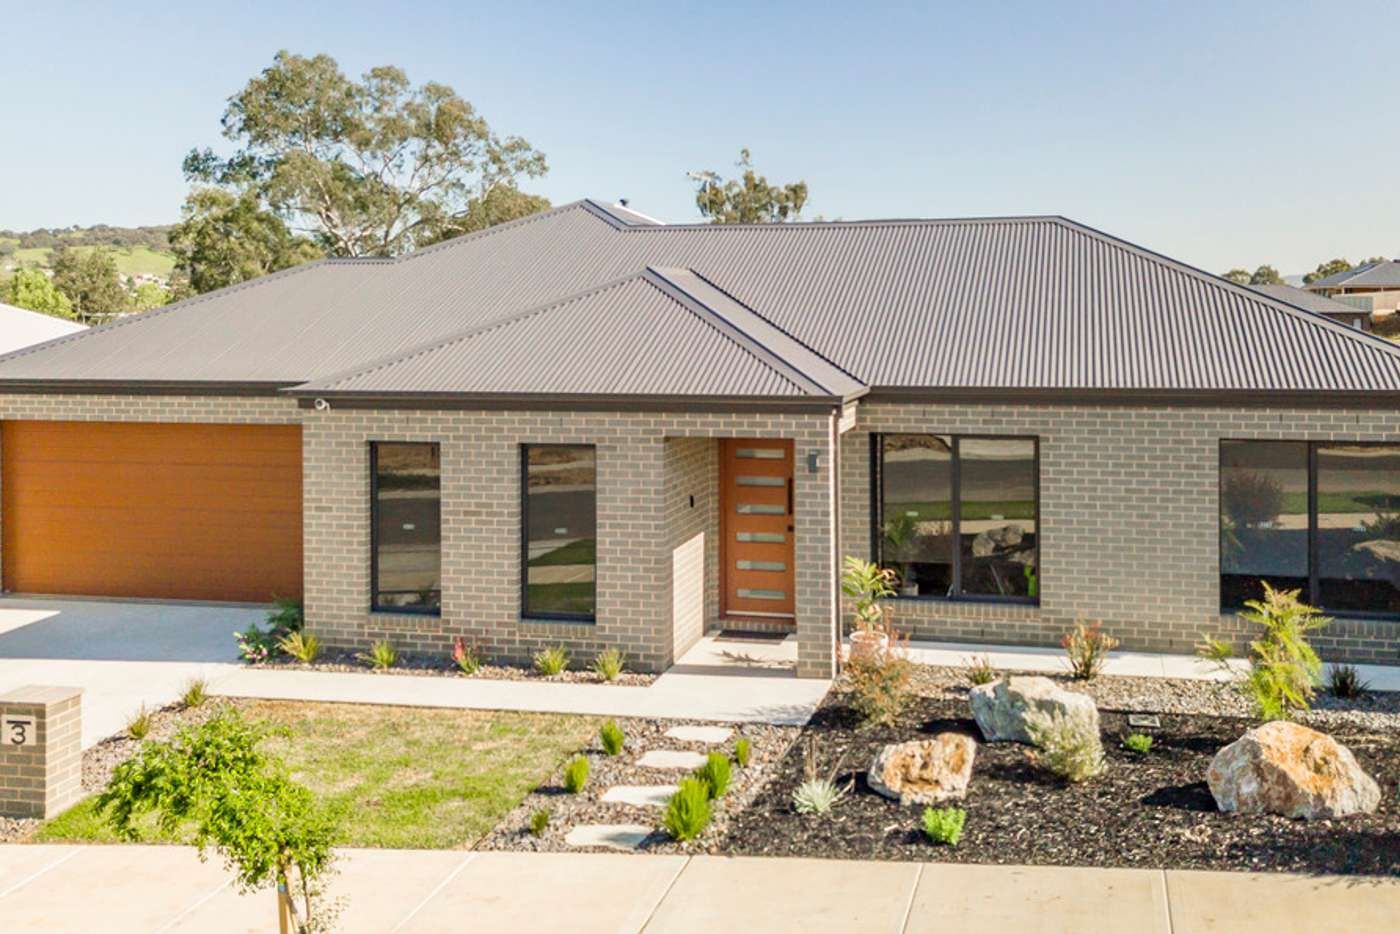 Main view of Homely house listing, 3 Willowdale Street, Wodonga VIC 3690